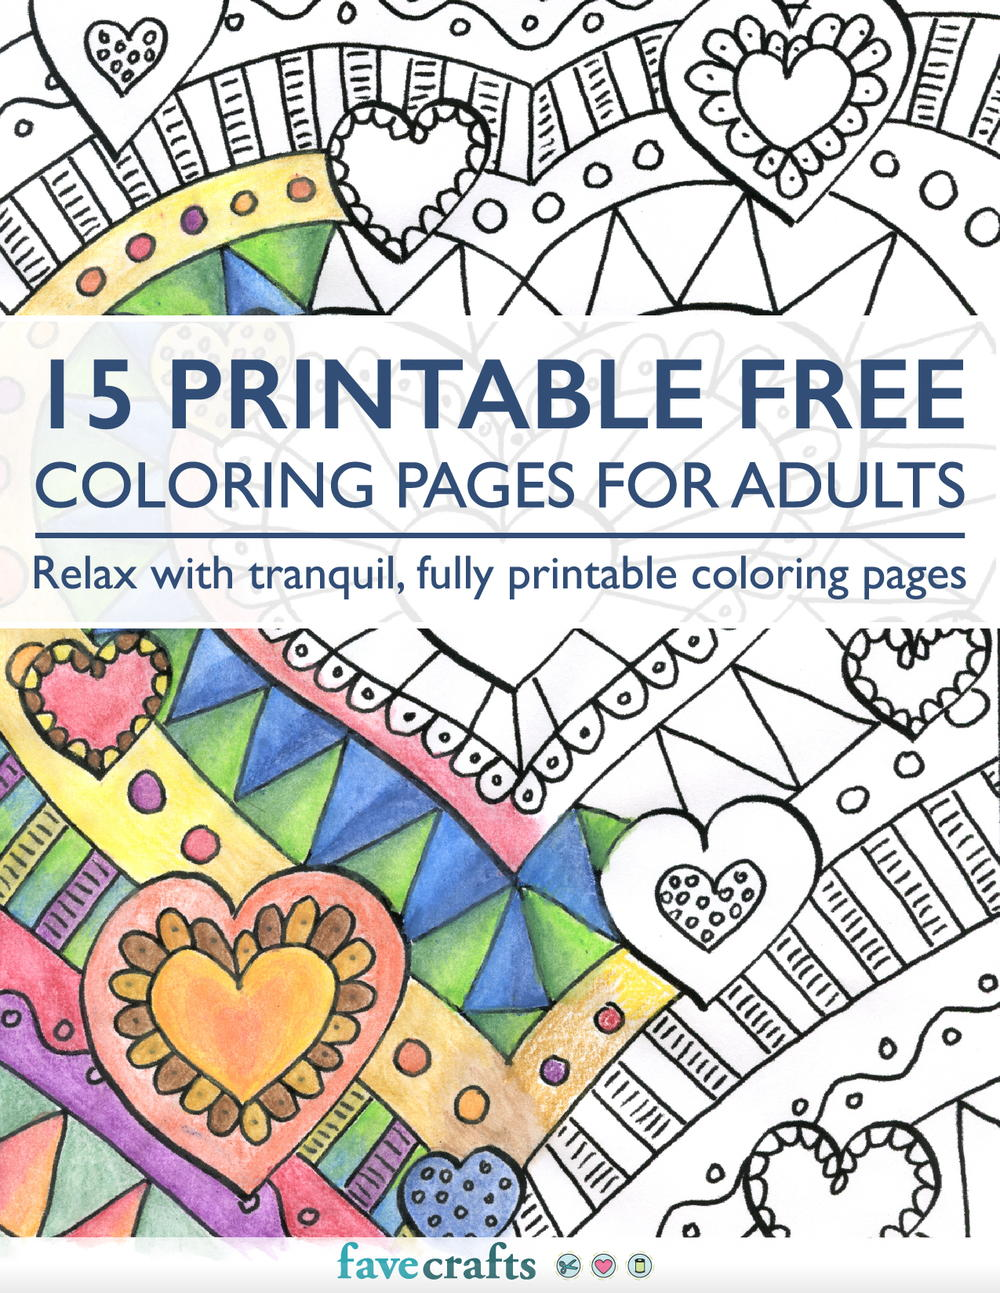 15 Printable Free Coloring Pages for Adults [PDF ... | coloring pages for adults online printable